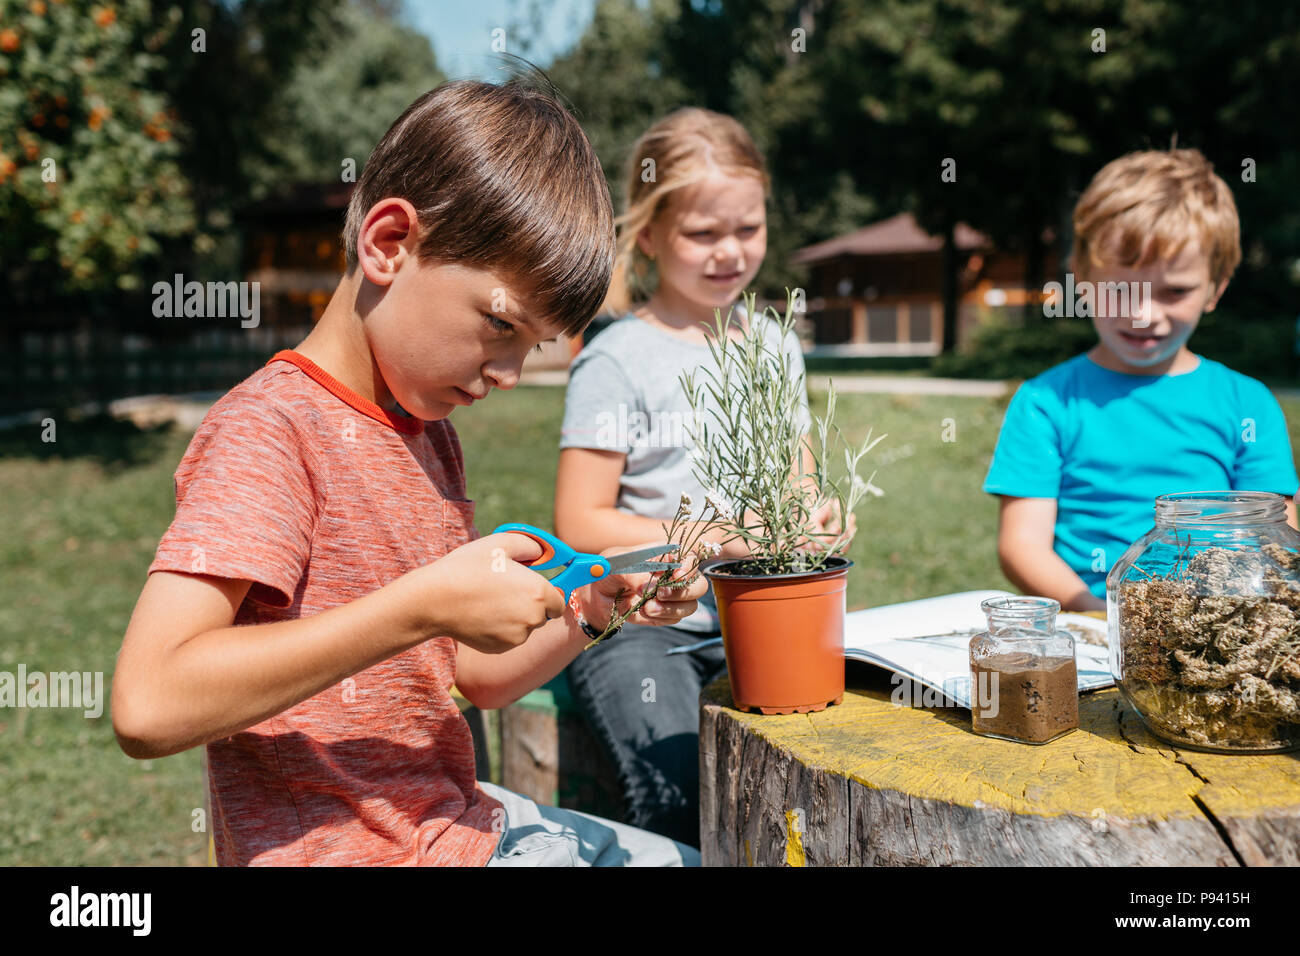 Kids learning together at a natural science class. Side view of a primary student exploring herbs and plants with his classmates in a school garden. - Stock Image